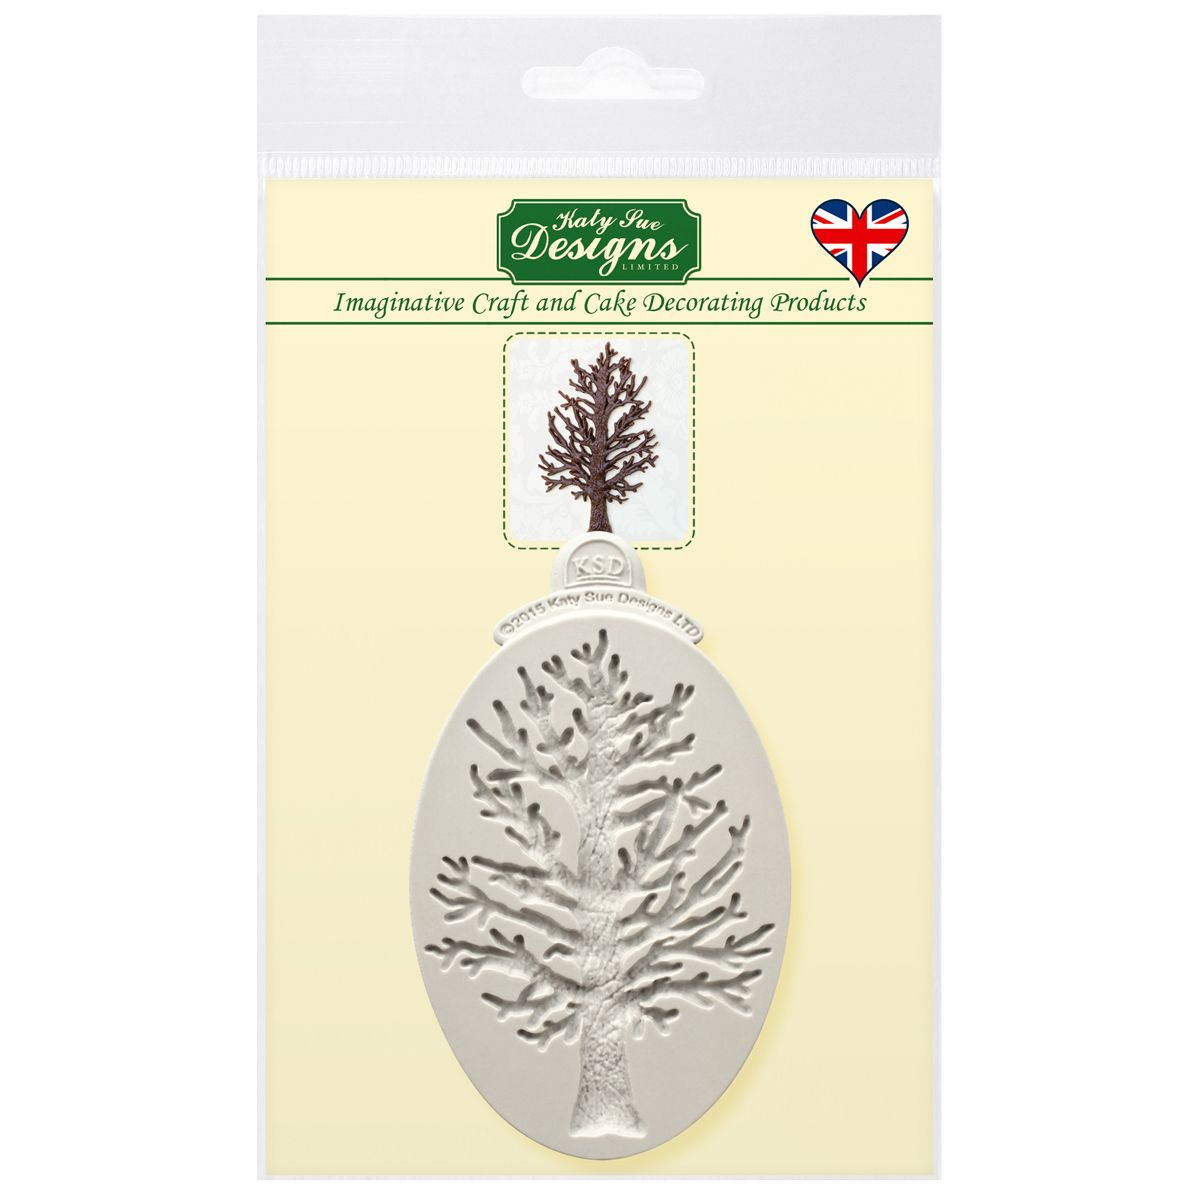 Forma Malý strom silueta, CE0053 Katy Sue Mould Little Tree Silhouette